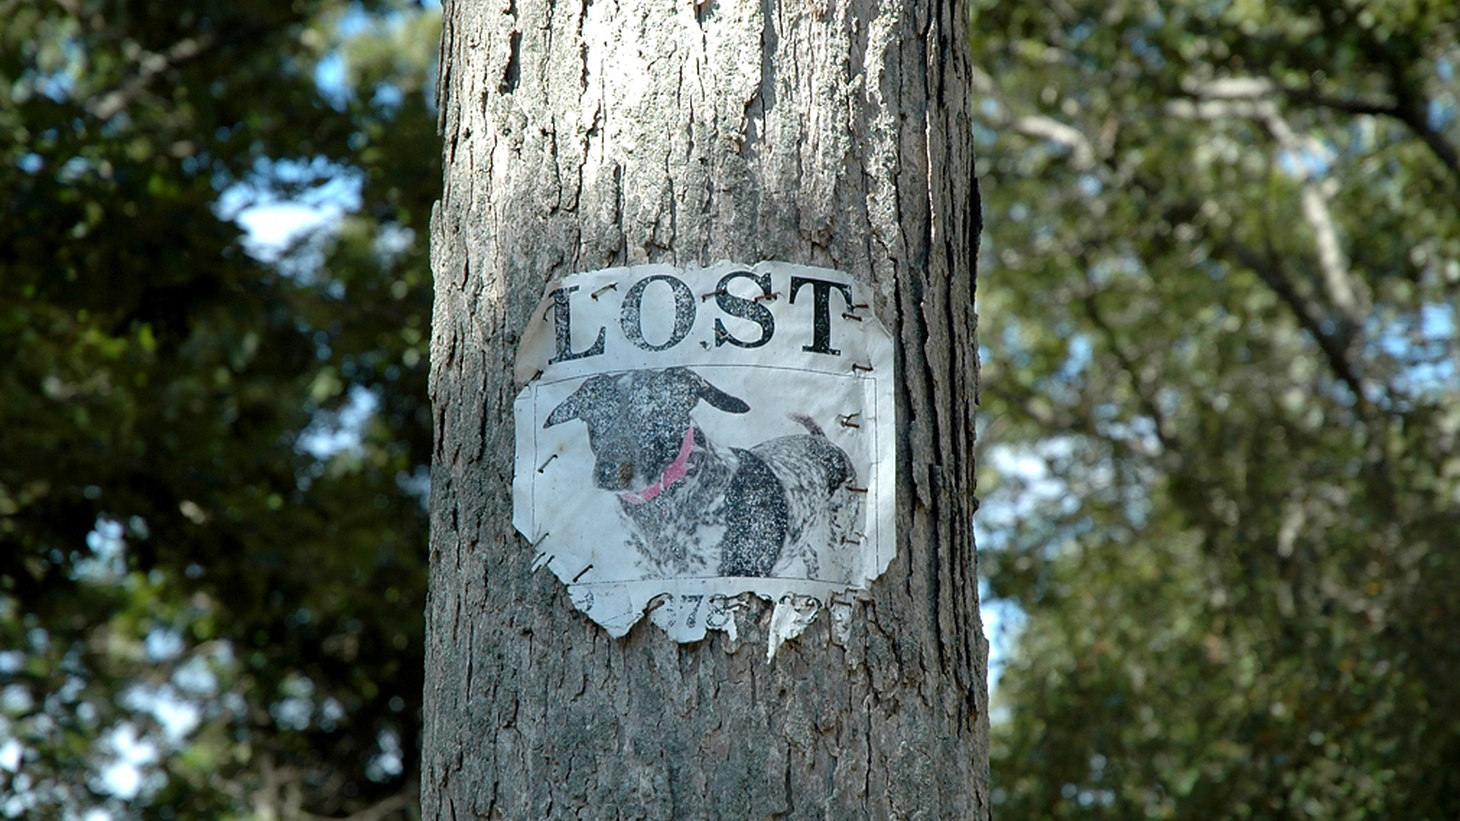 Stories of people who are lost, histories that are lost, and things that are lost.